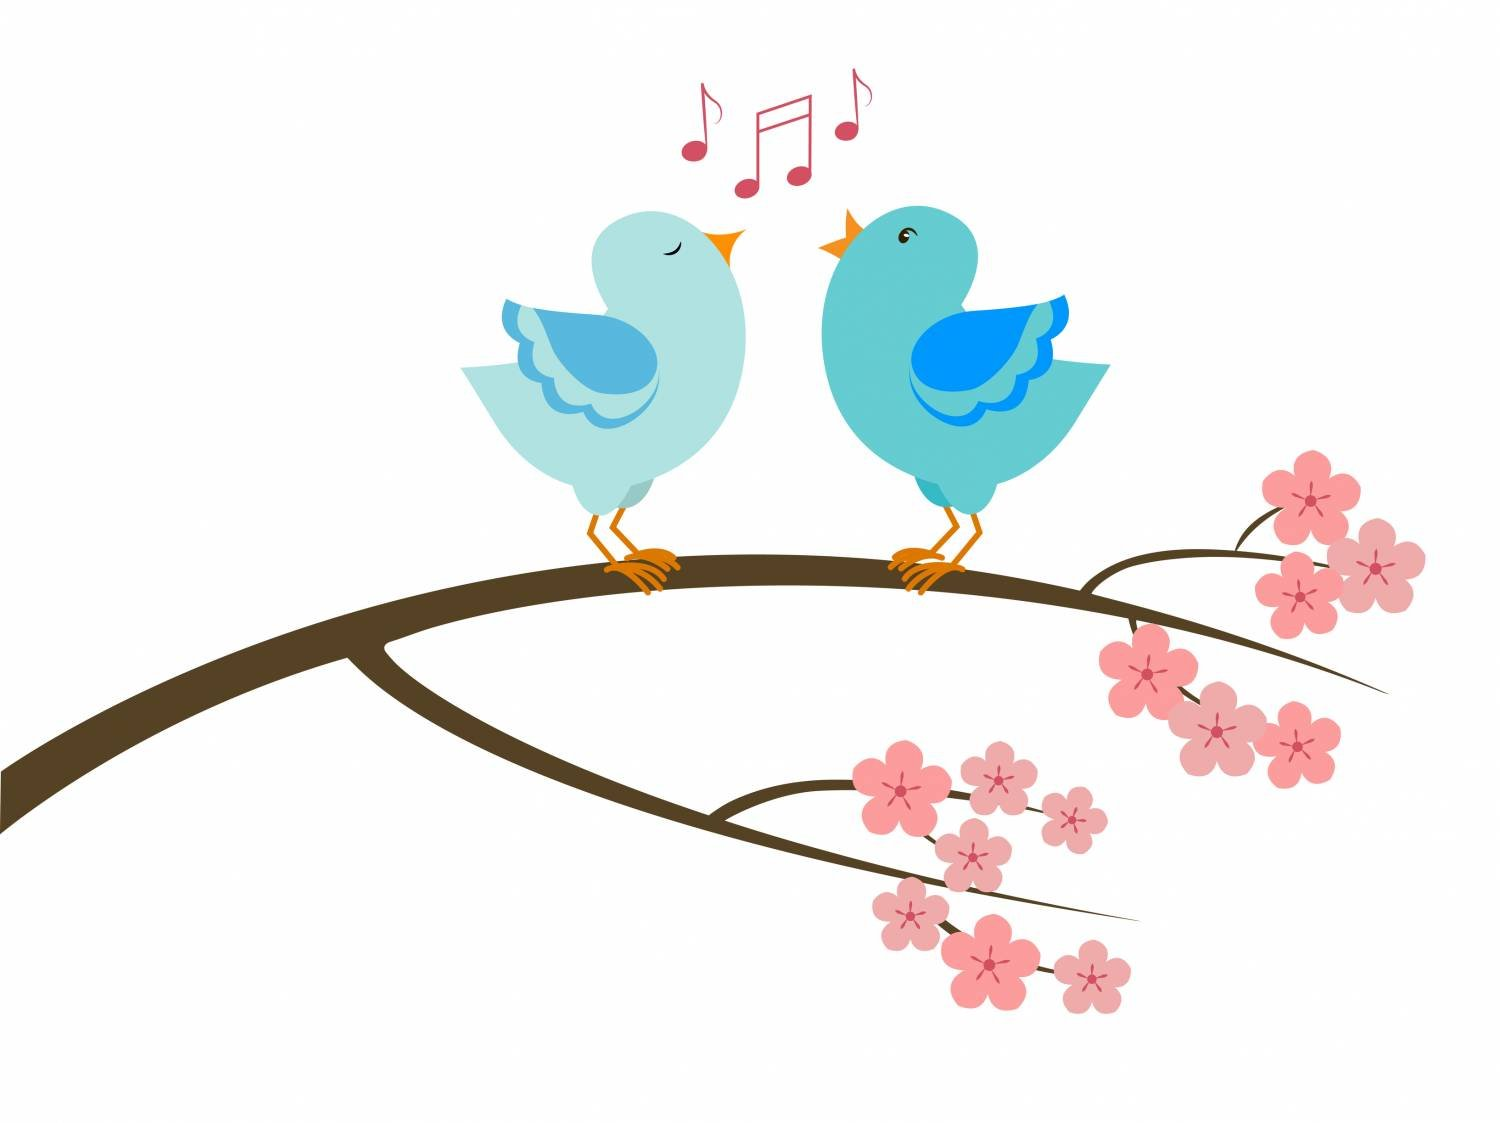 A couple of singing birds | © Ahnassi | Dreamstime Stock Photos | © Ahnassi | Dreamstime Stock Photos